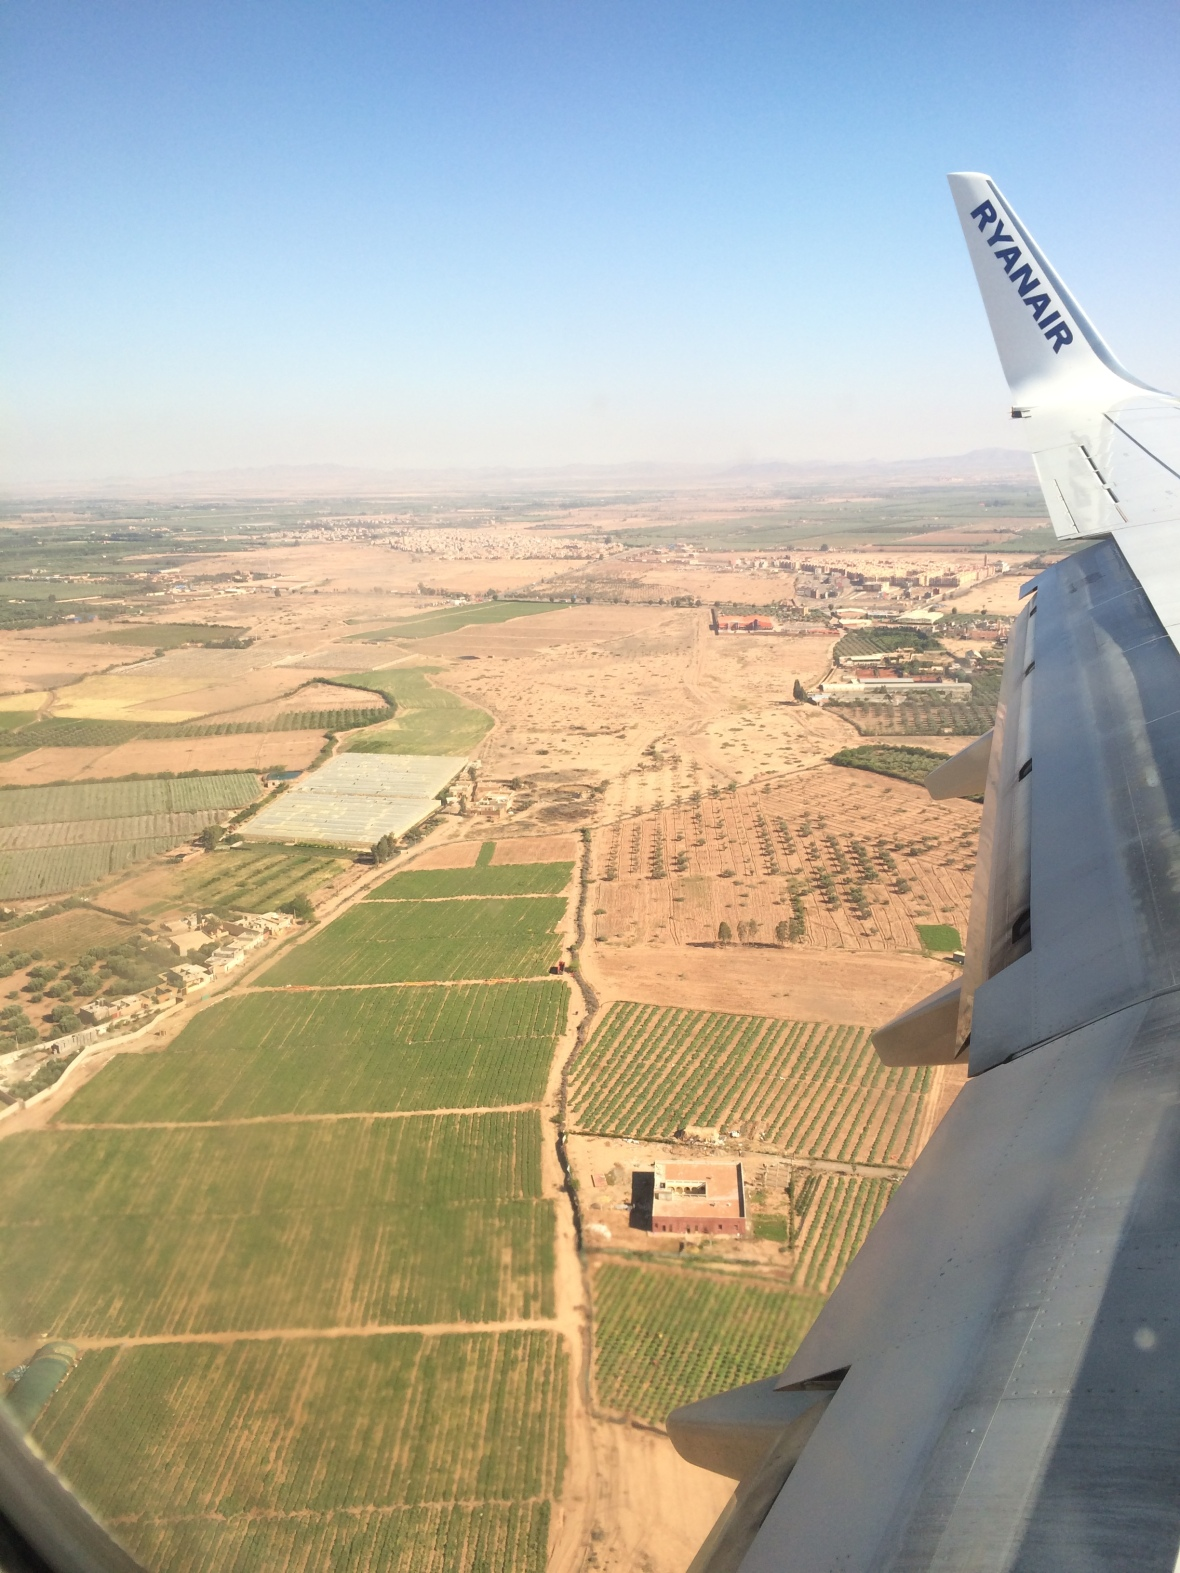 Landing In Marrakech, Morocco